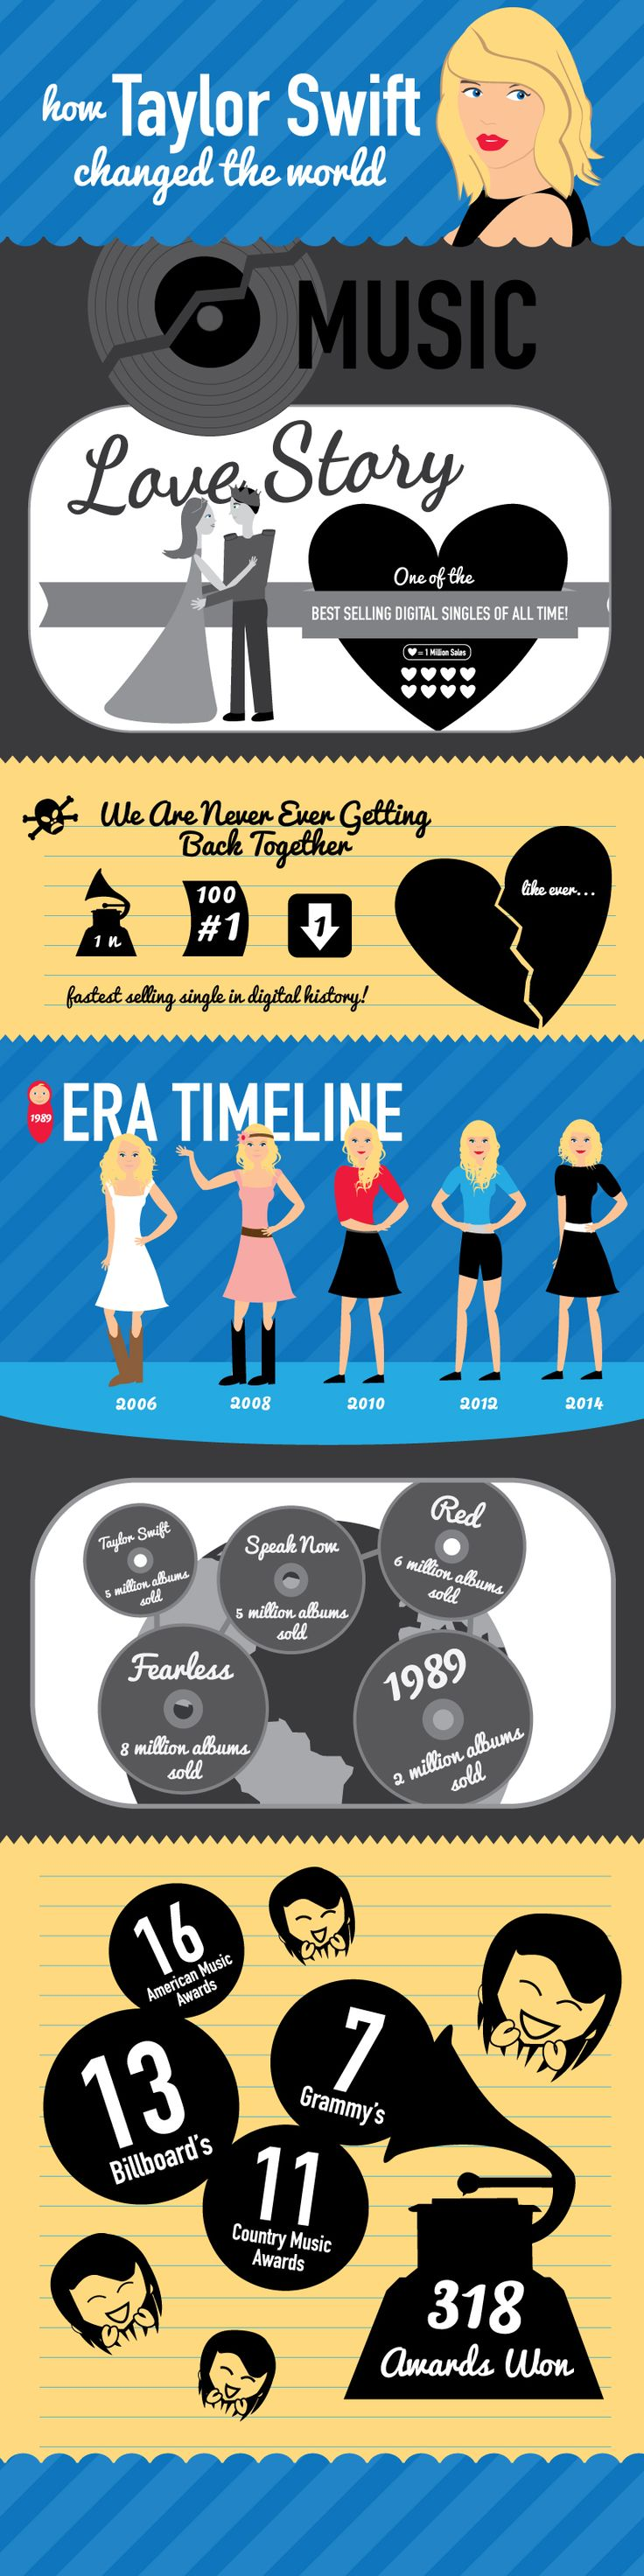 Taylor Swift infography